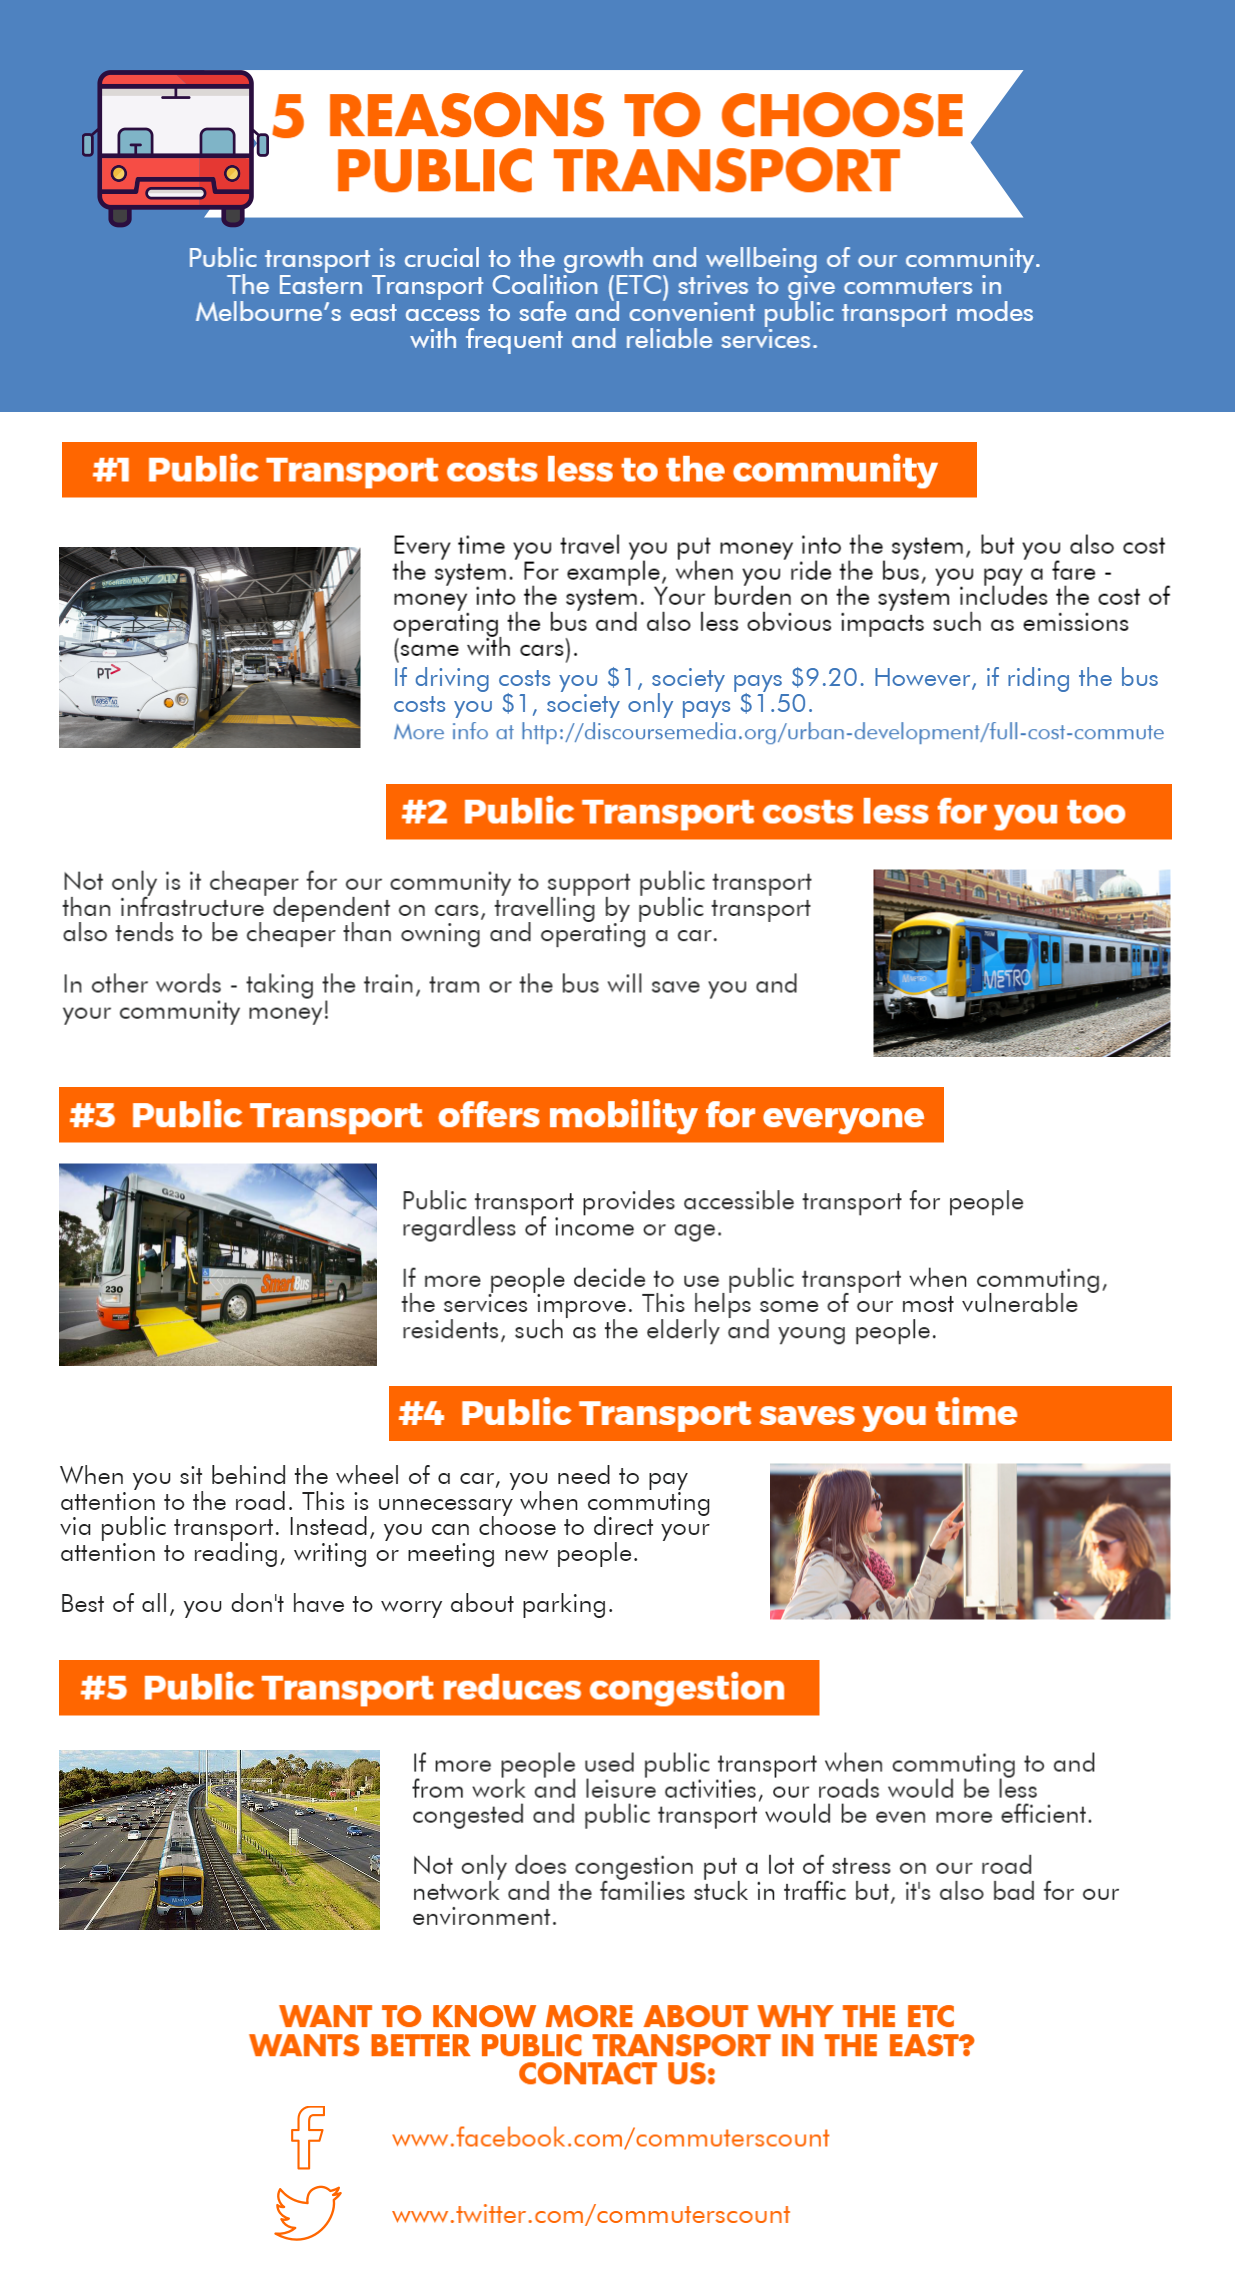 5 reasons to choose public transport